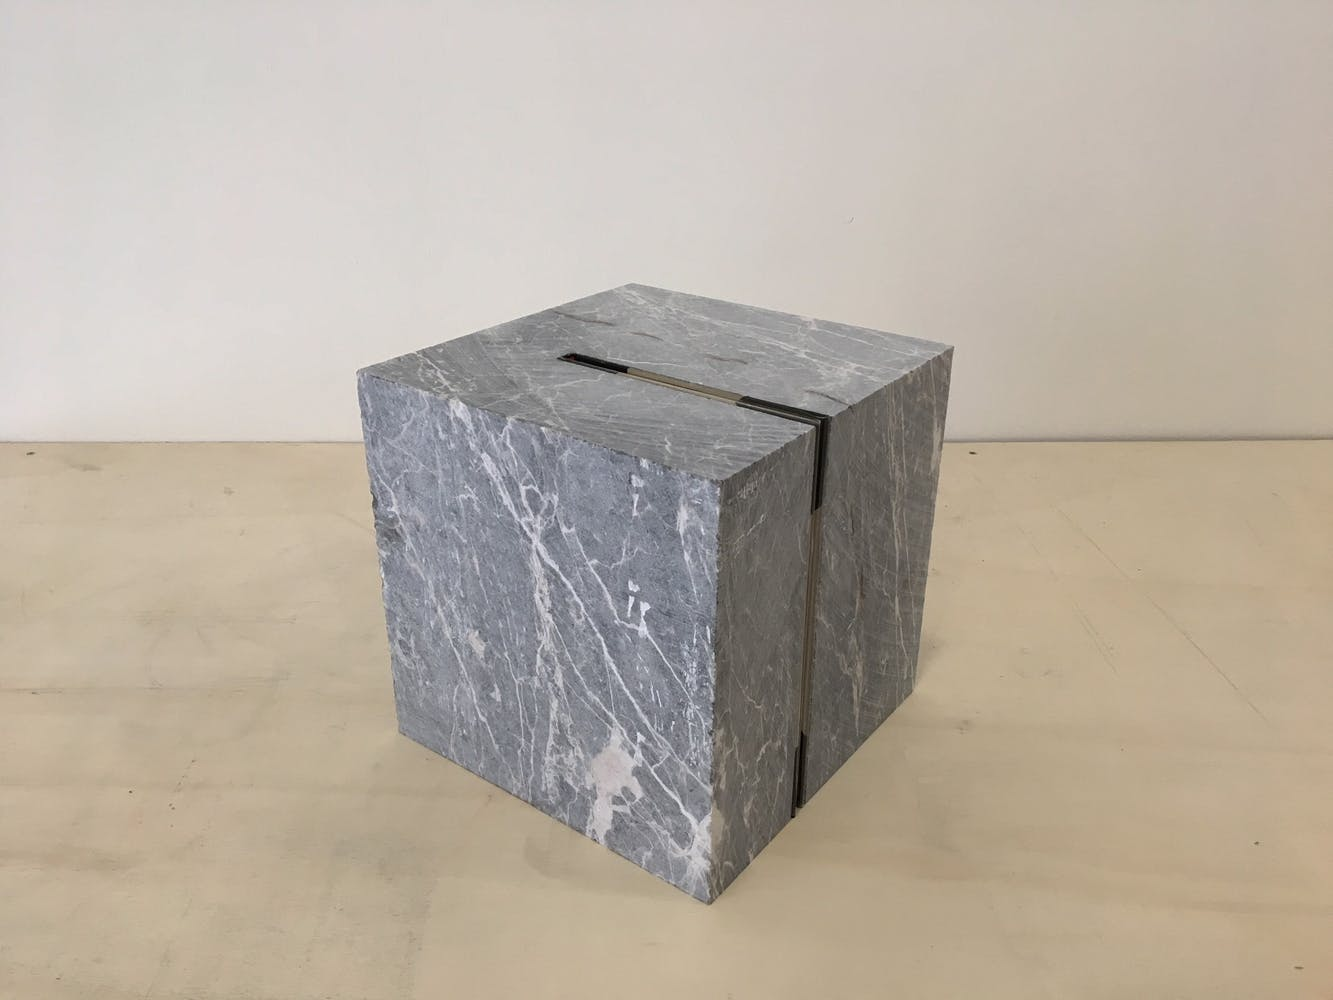 Francesco Arena, Cube (Bartleby), 2018